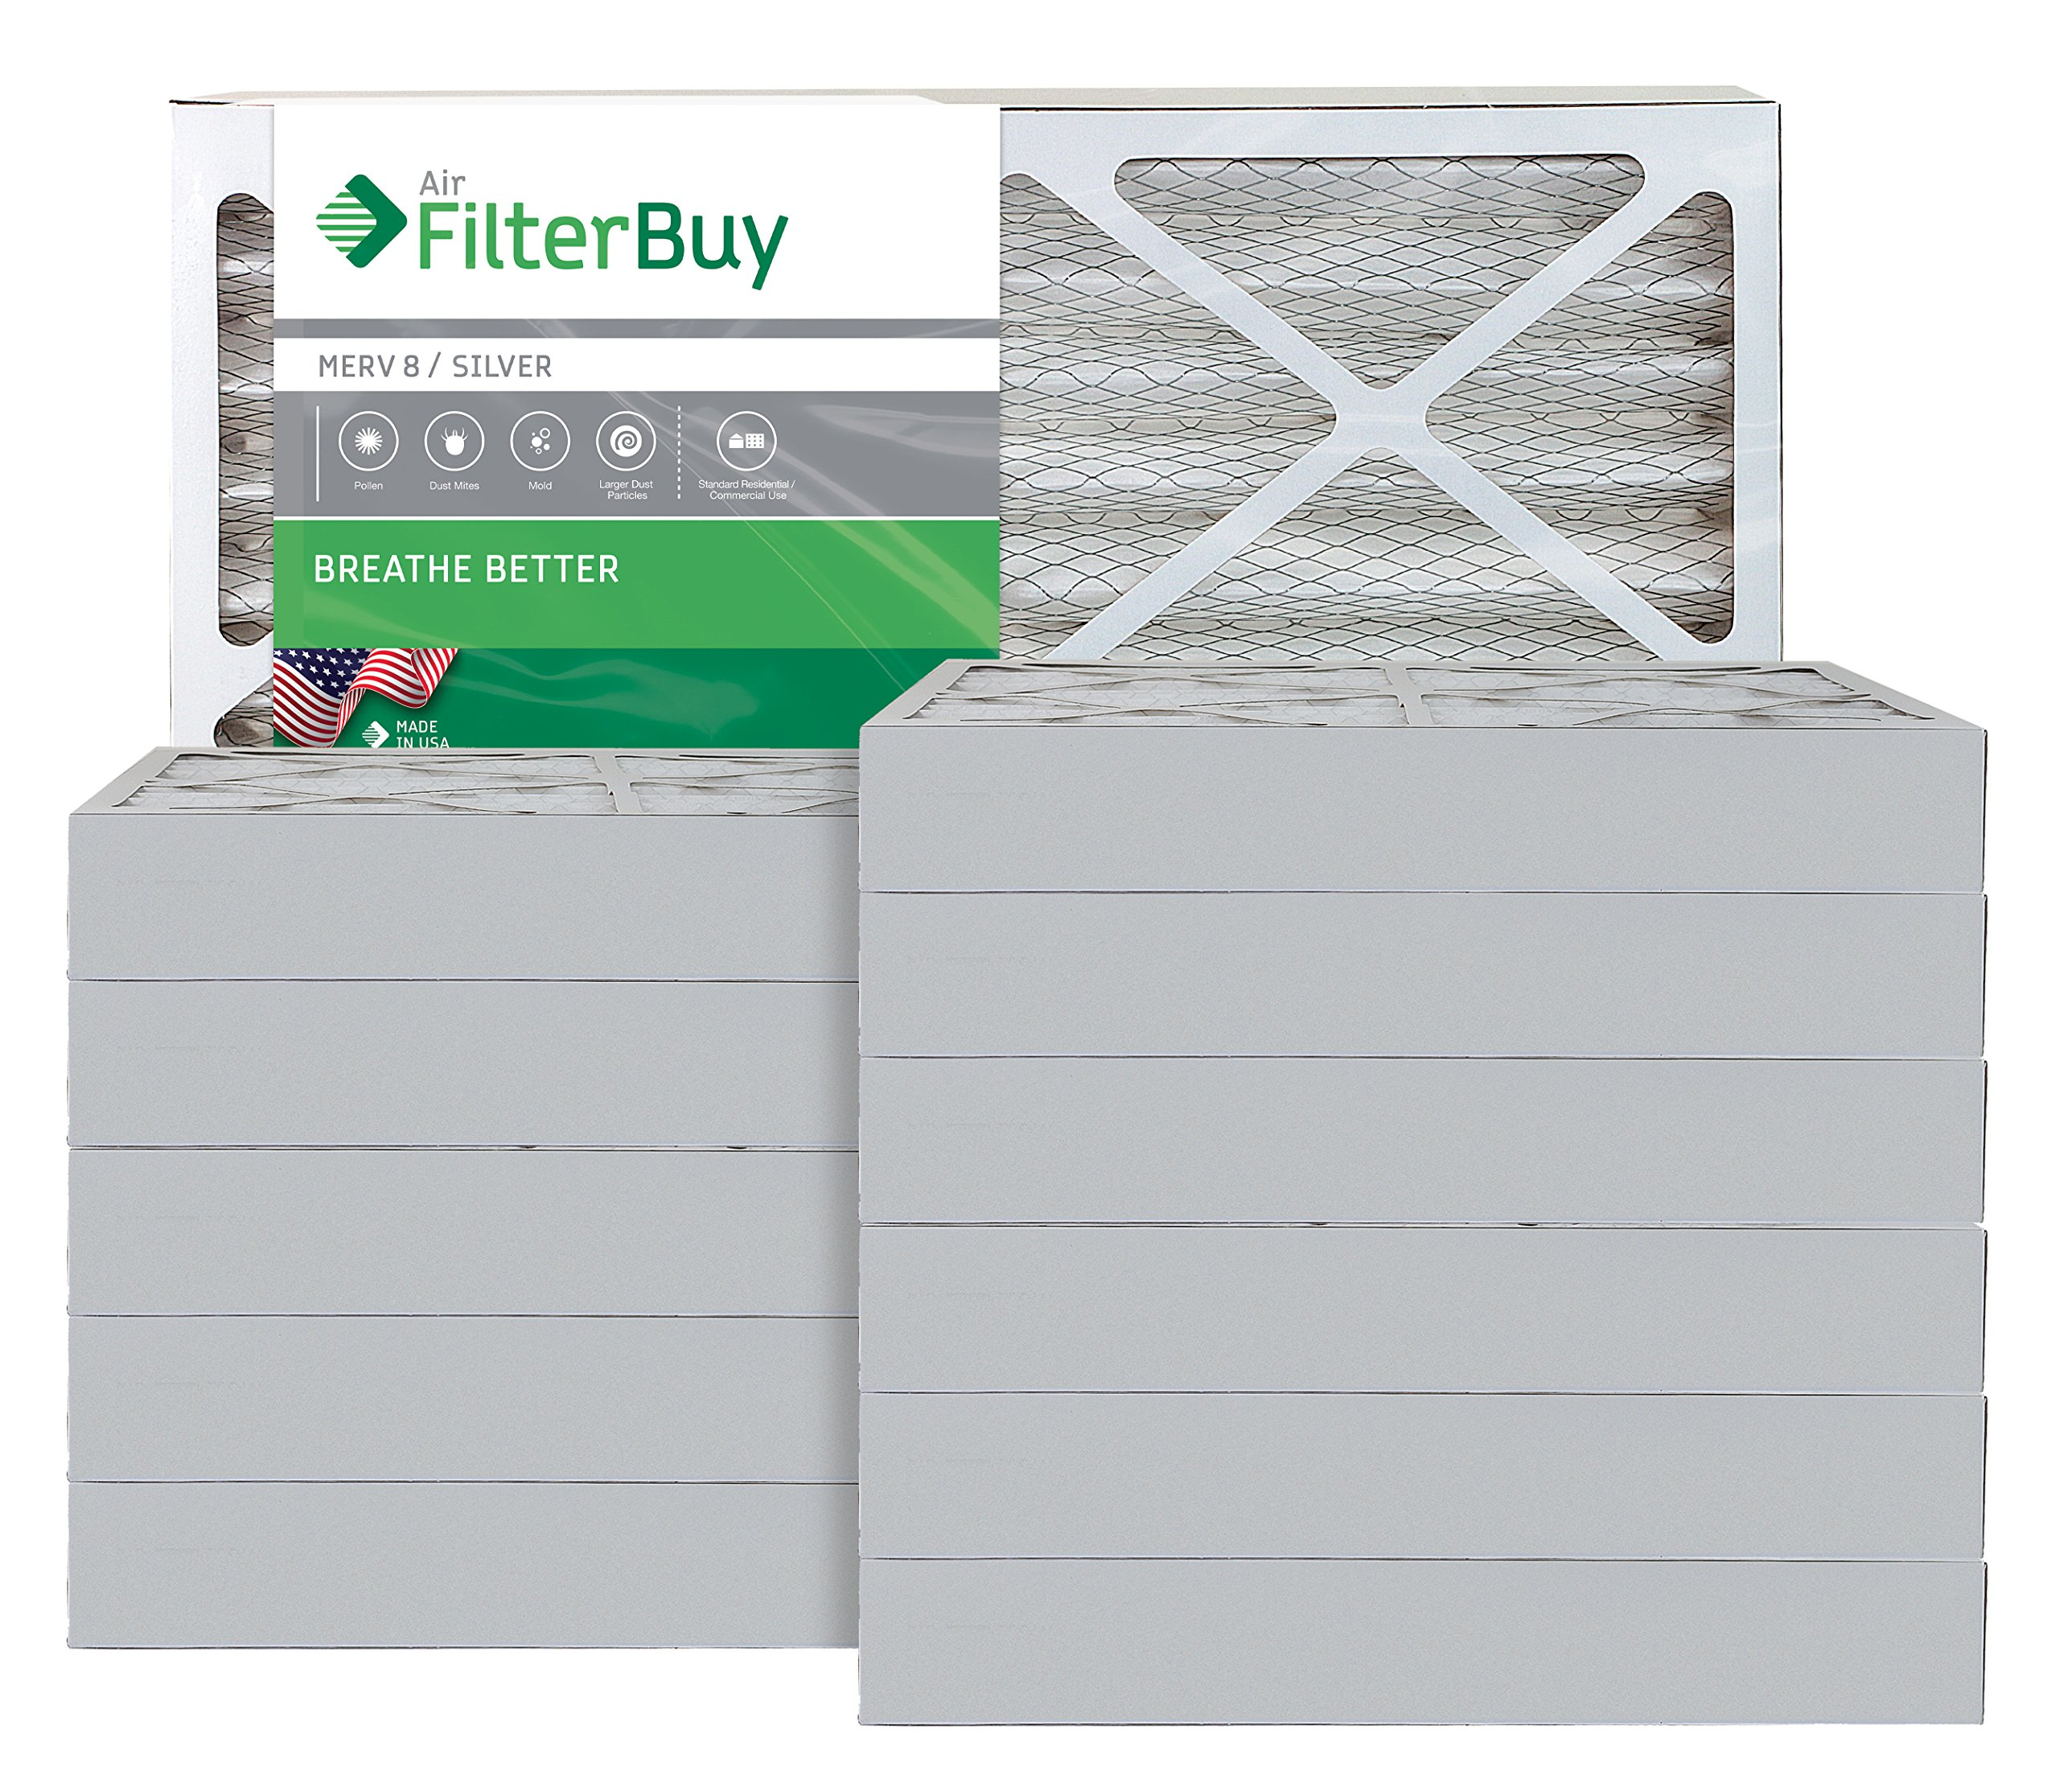 AFB Silver MERV 8 20x25x4 Pleated AC Furnace Air Filter. Pack of 12 Filters. 100% produced in the USA. by FilterBuy